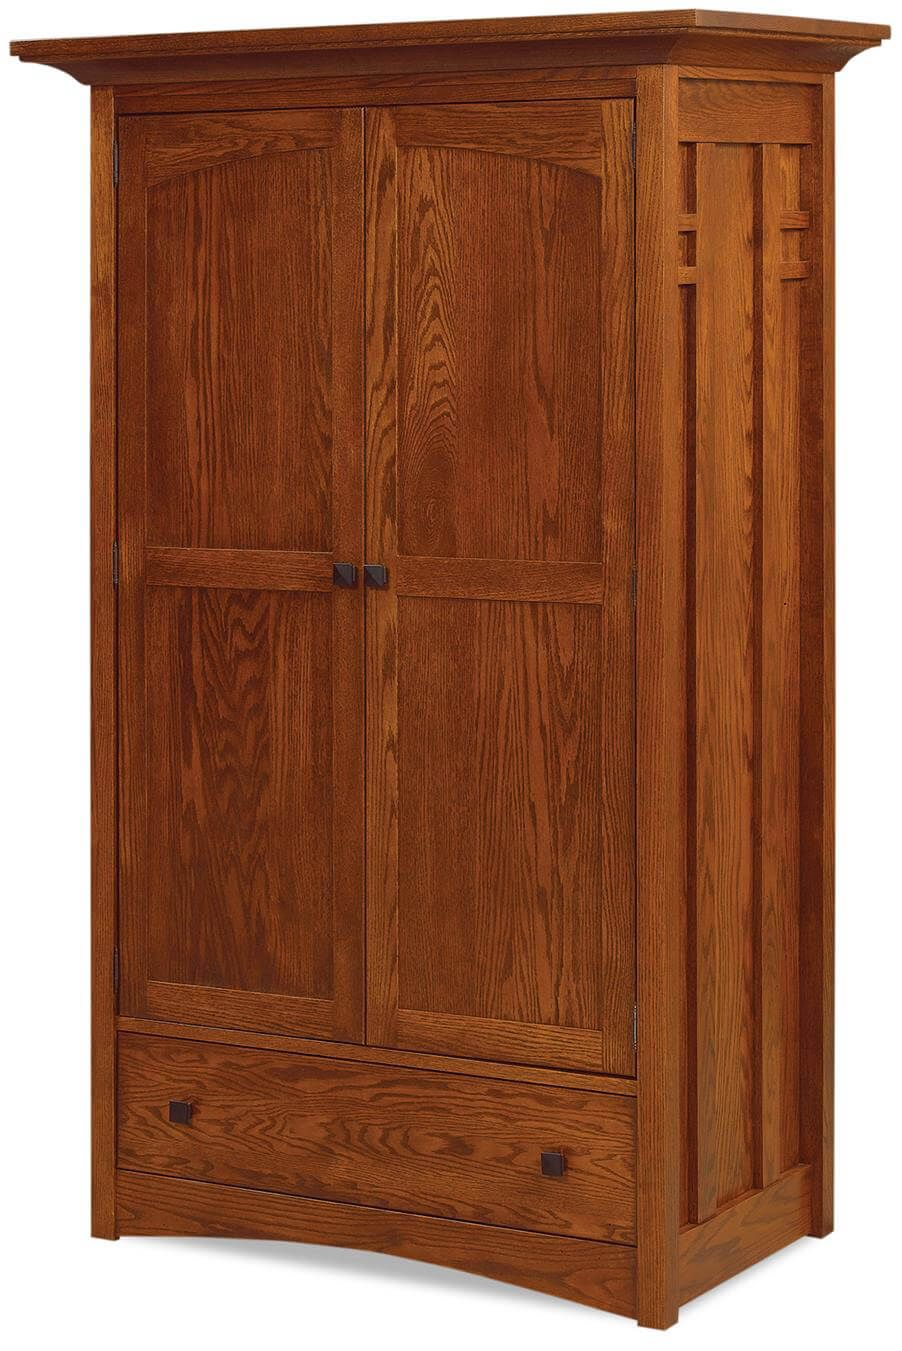 alpine clothing wardrobe armoire countryside amish furniture. Black Bedroom Furniture Sets. Home Design Ideas